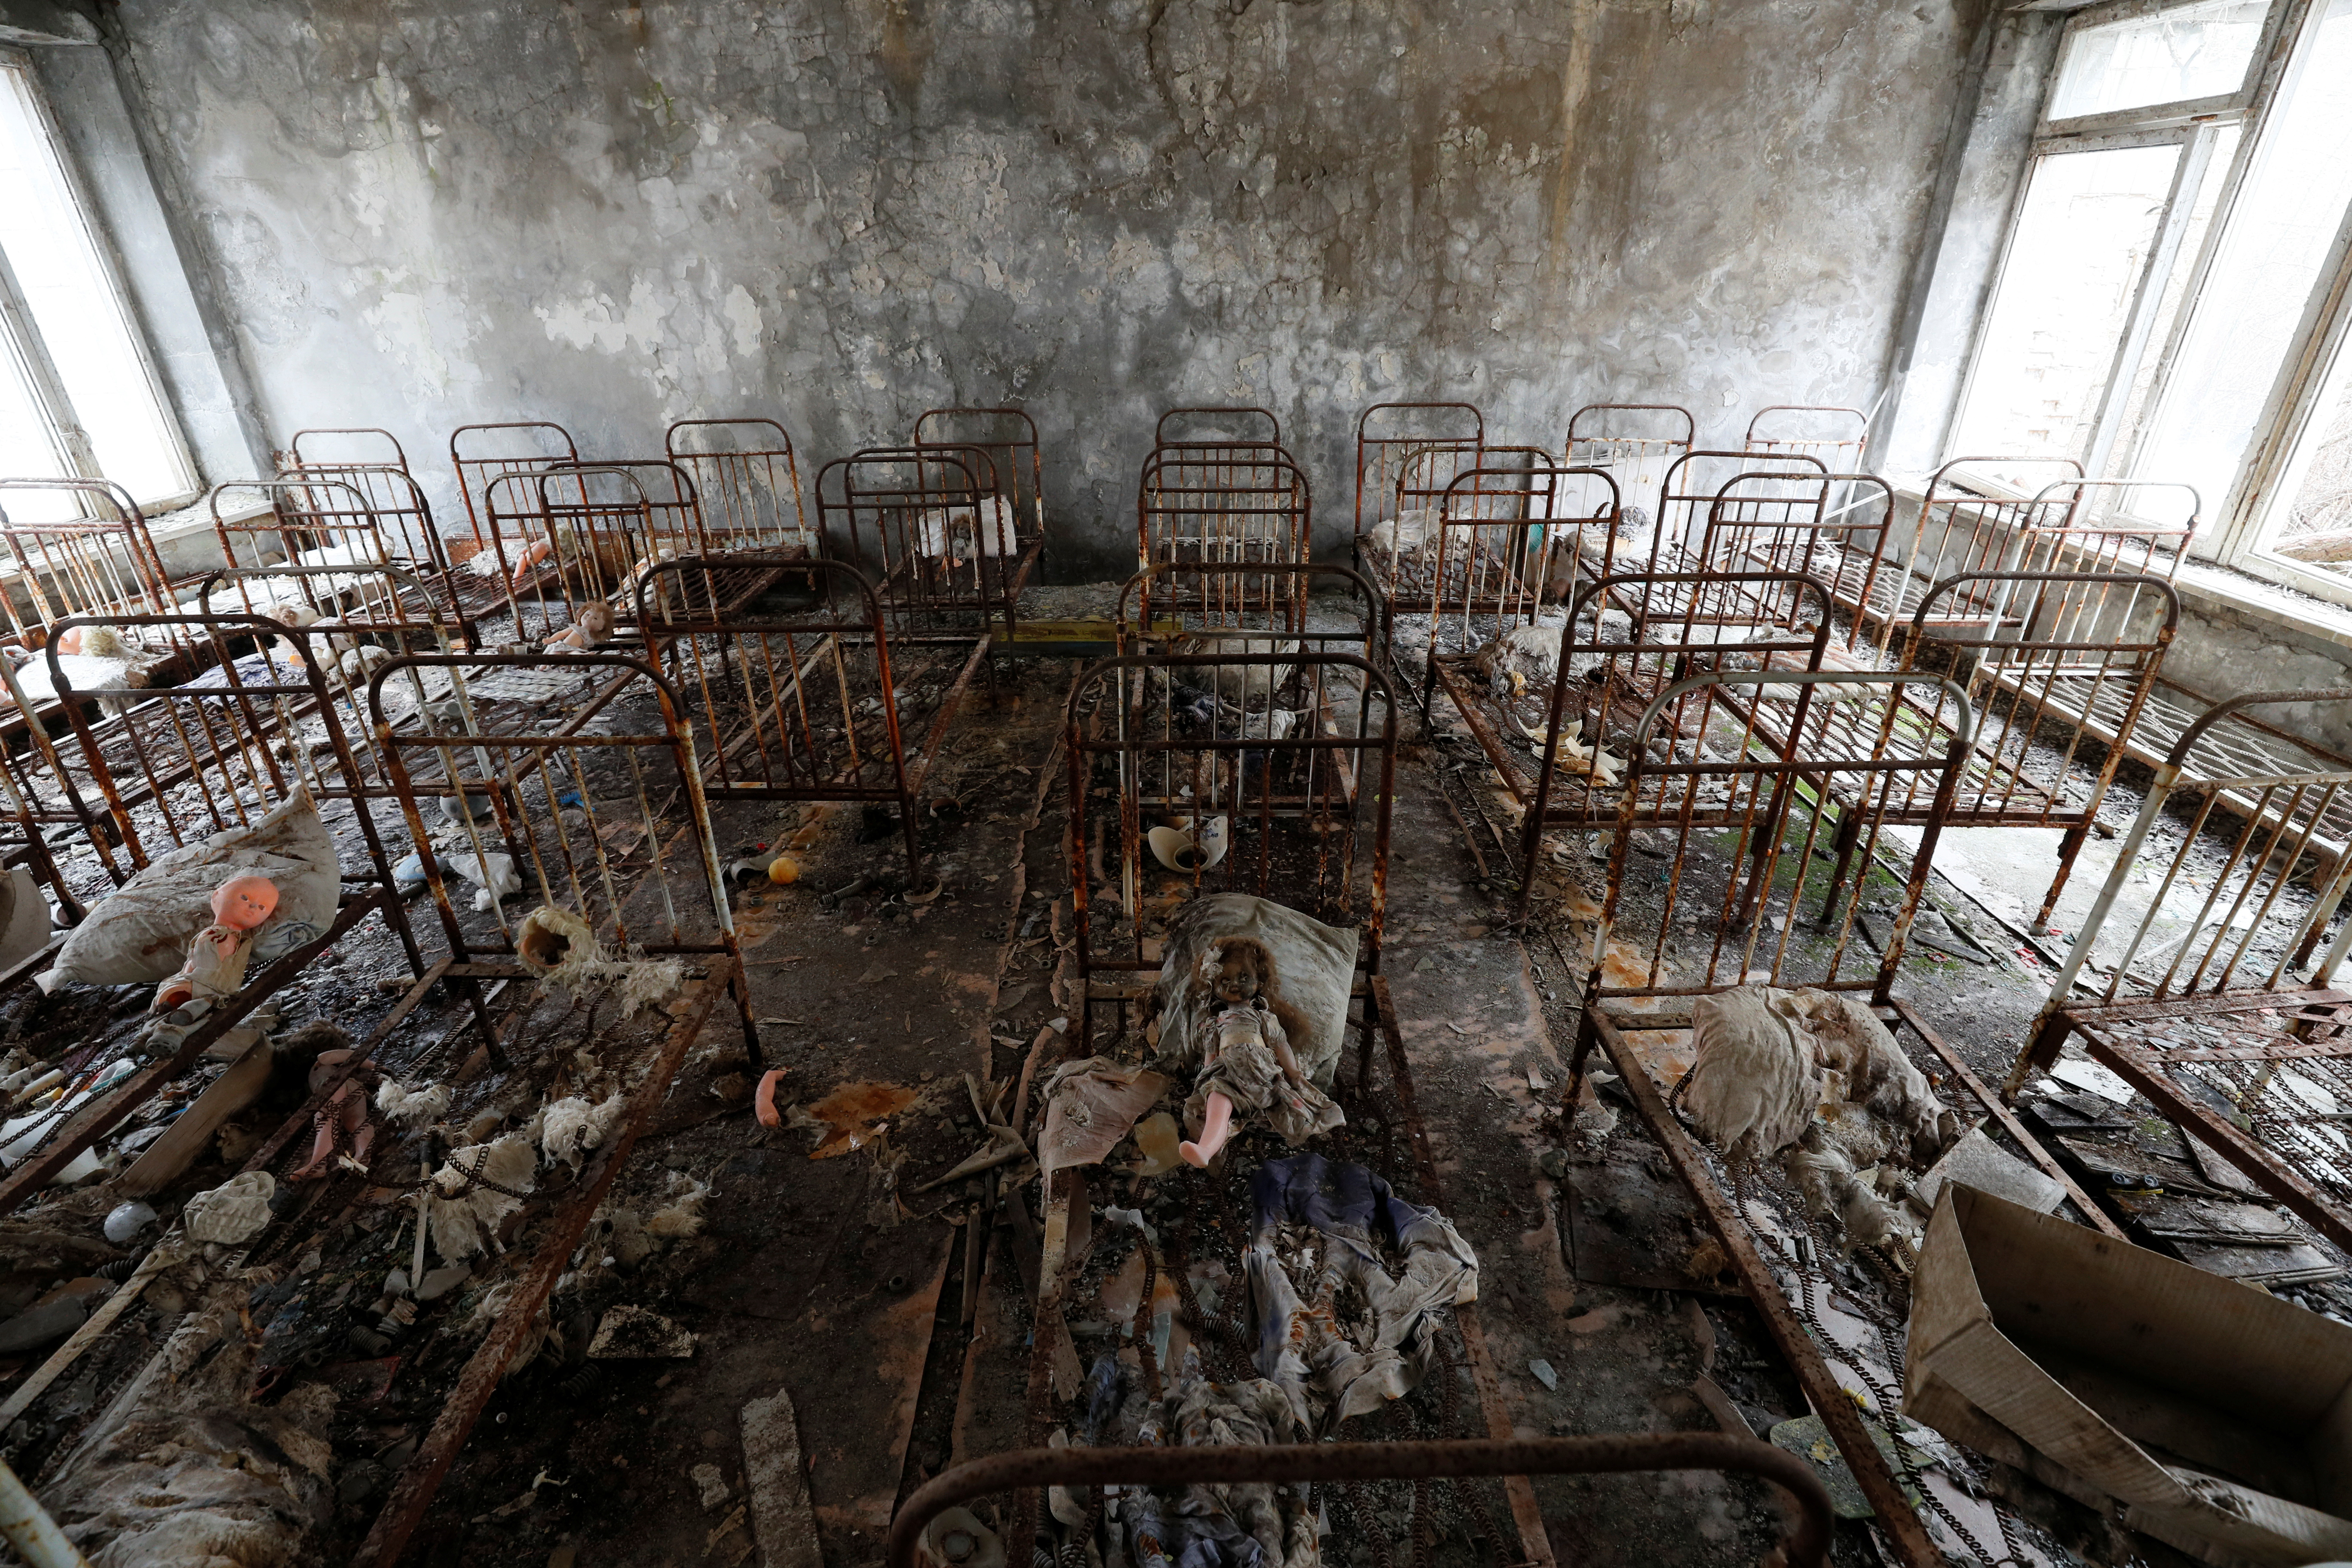 Children's beds are seen in a kindergarten near the Chernobyl Nuclear Power Plant in the abandoned city of Pripyat, Ukraine April 12, 2021. Picture taken April 12, 2021. REUTERS/Gleb Garanich